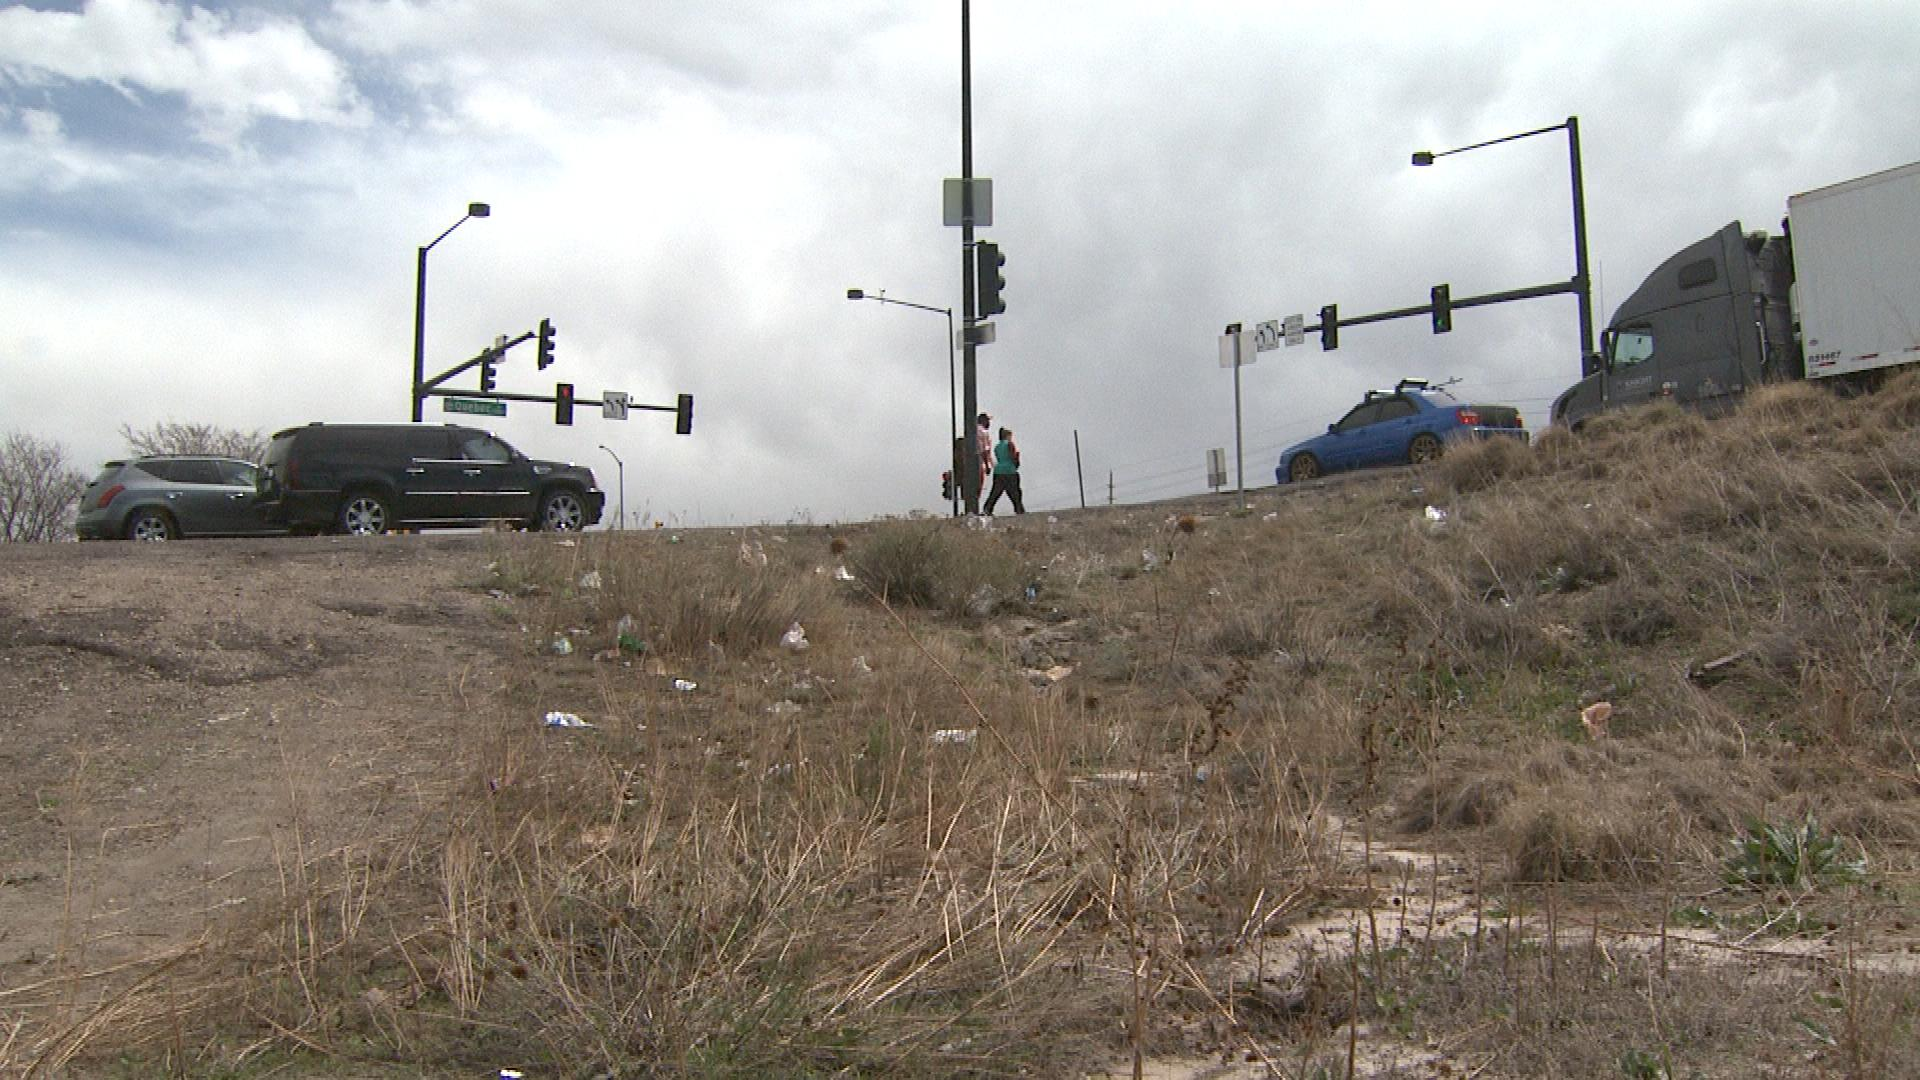 The area where the motorcyclist was found off I-70 (credit: CBS)